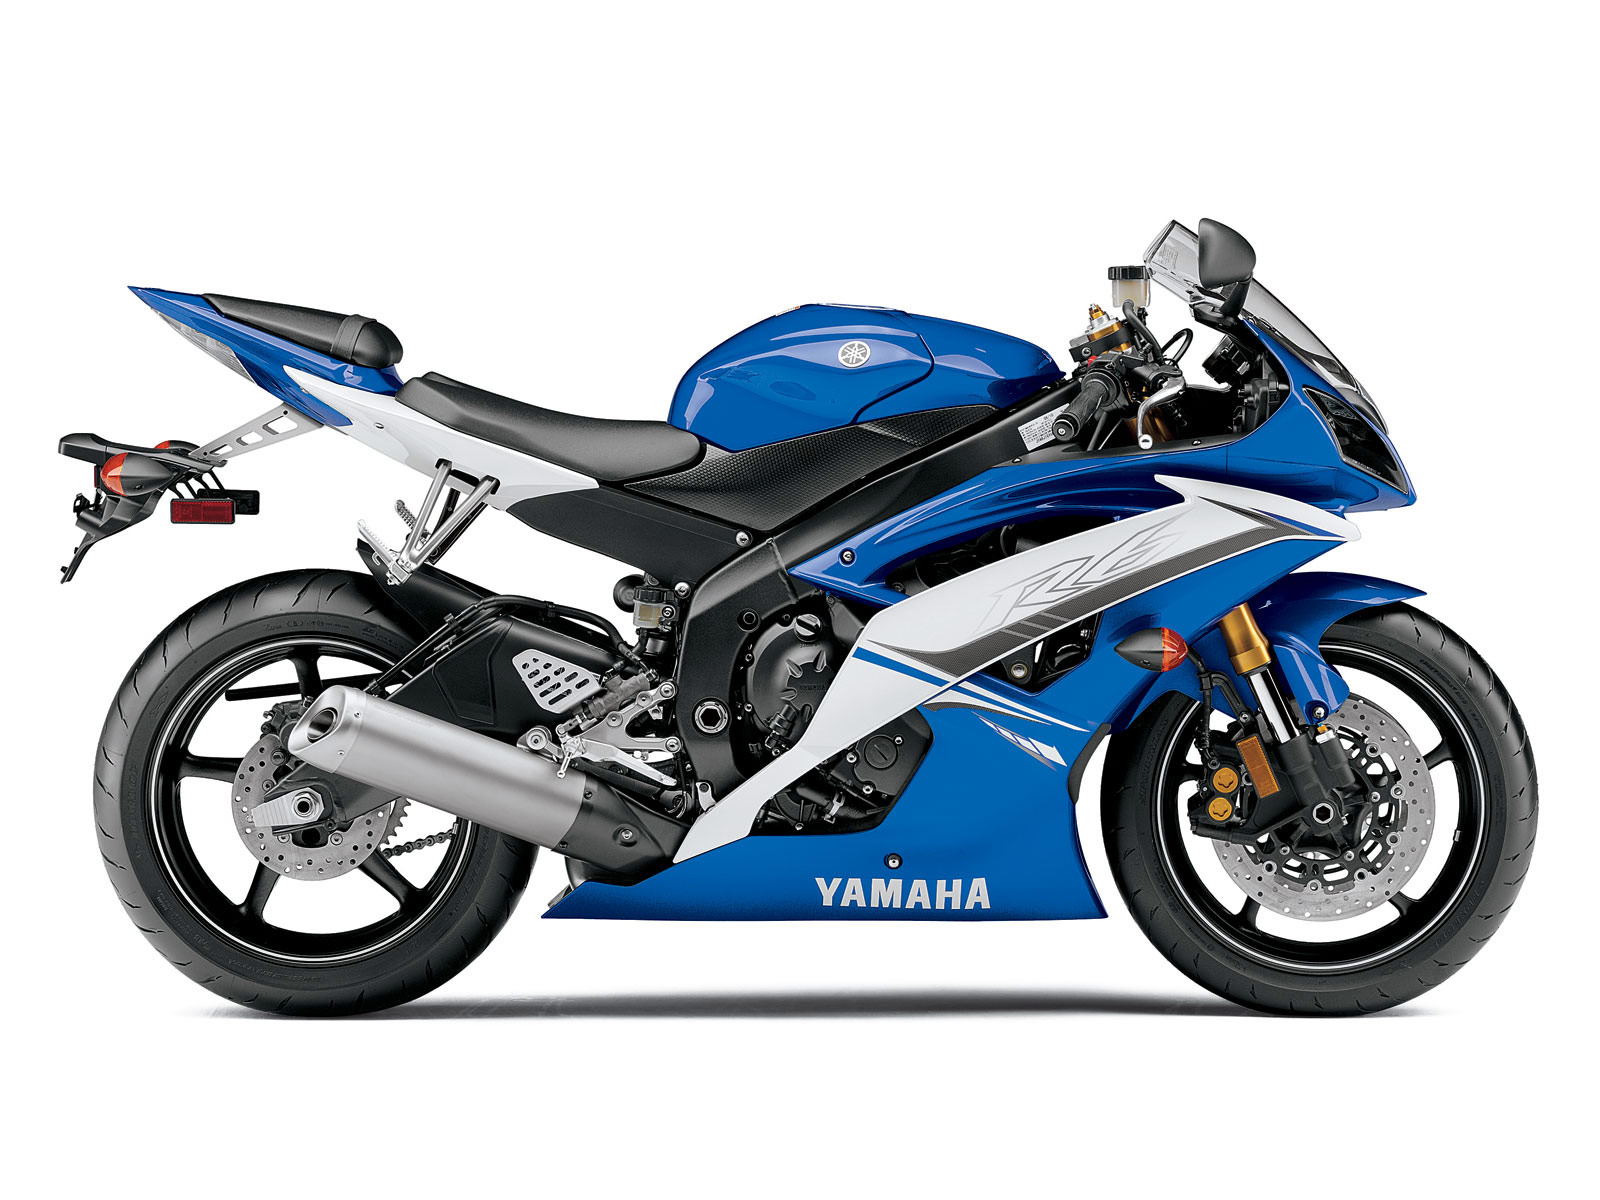 2011 yamaha yzf r6 accident lawyers insurance information. Black Bedroom Furniture Sets. Home Design Ideas